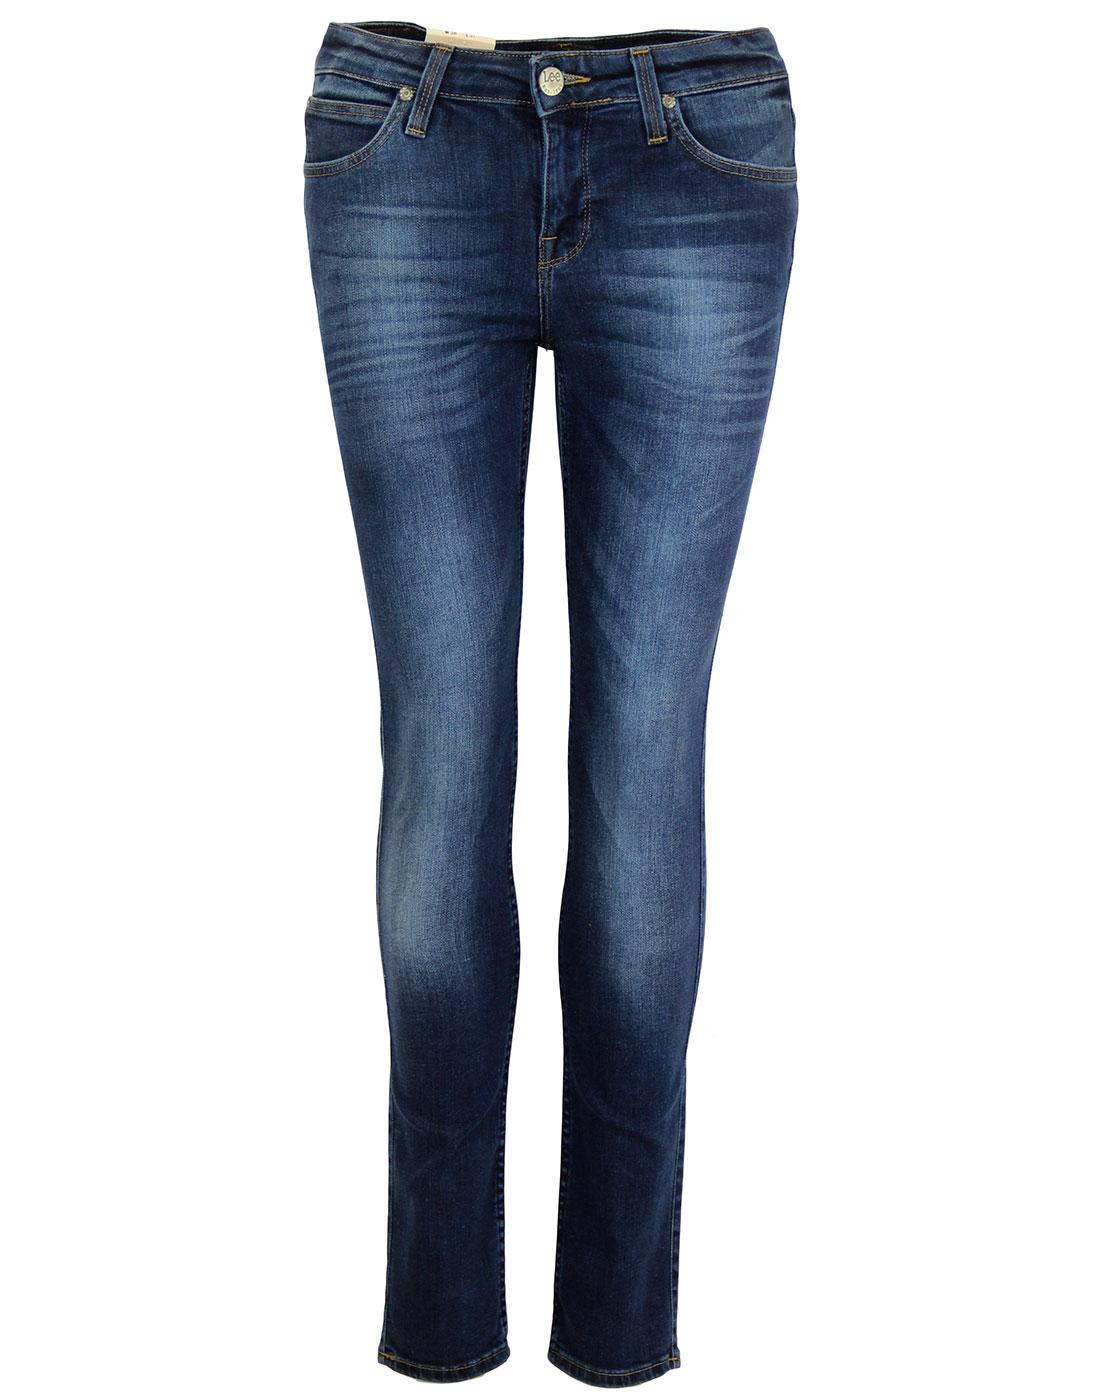 Scarlett LEE Retro Night Sky Skinny Denim Jeans